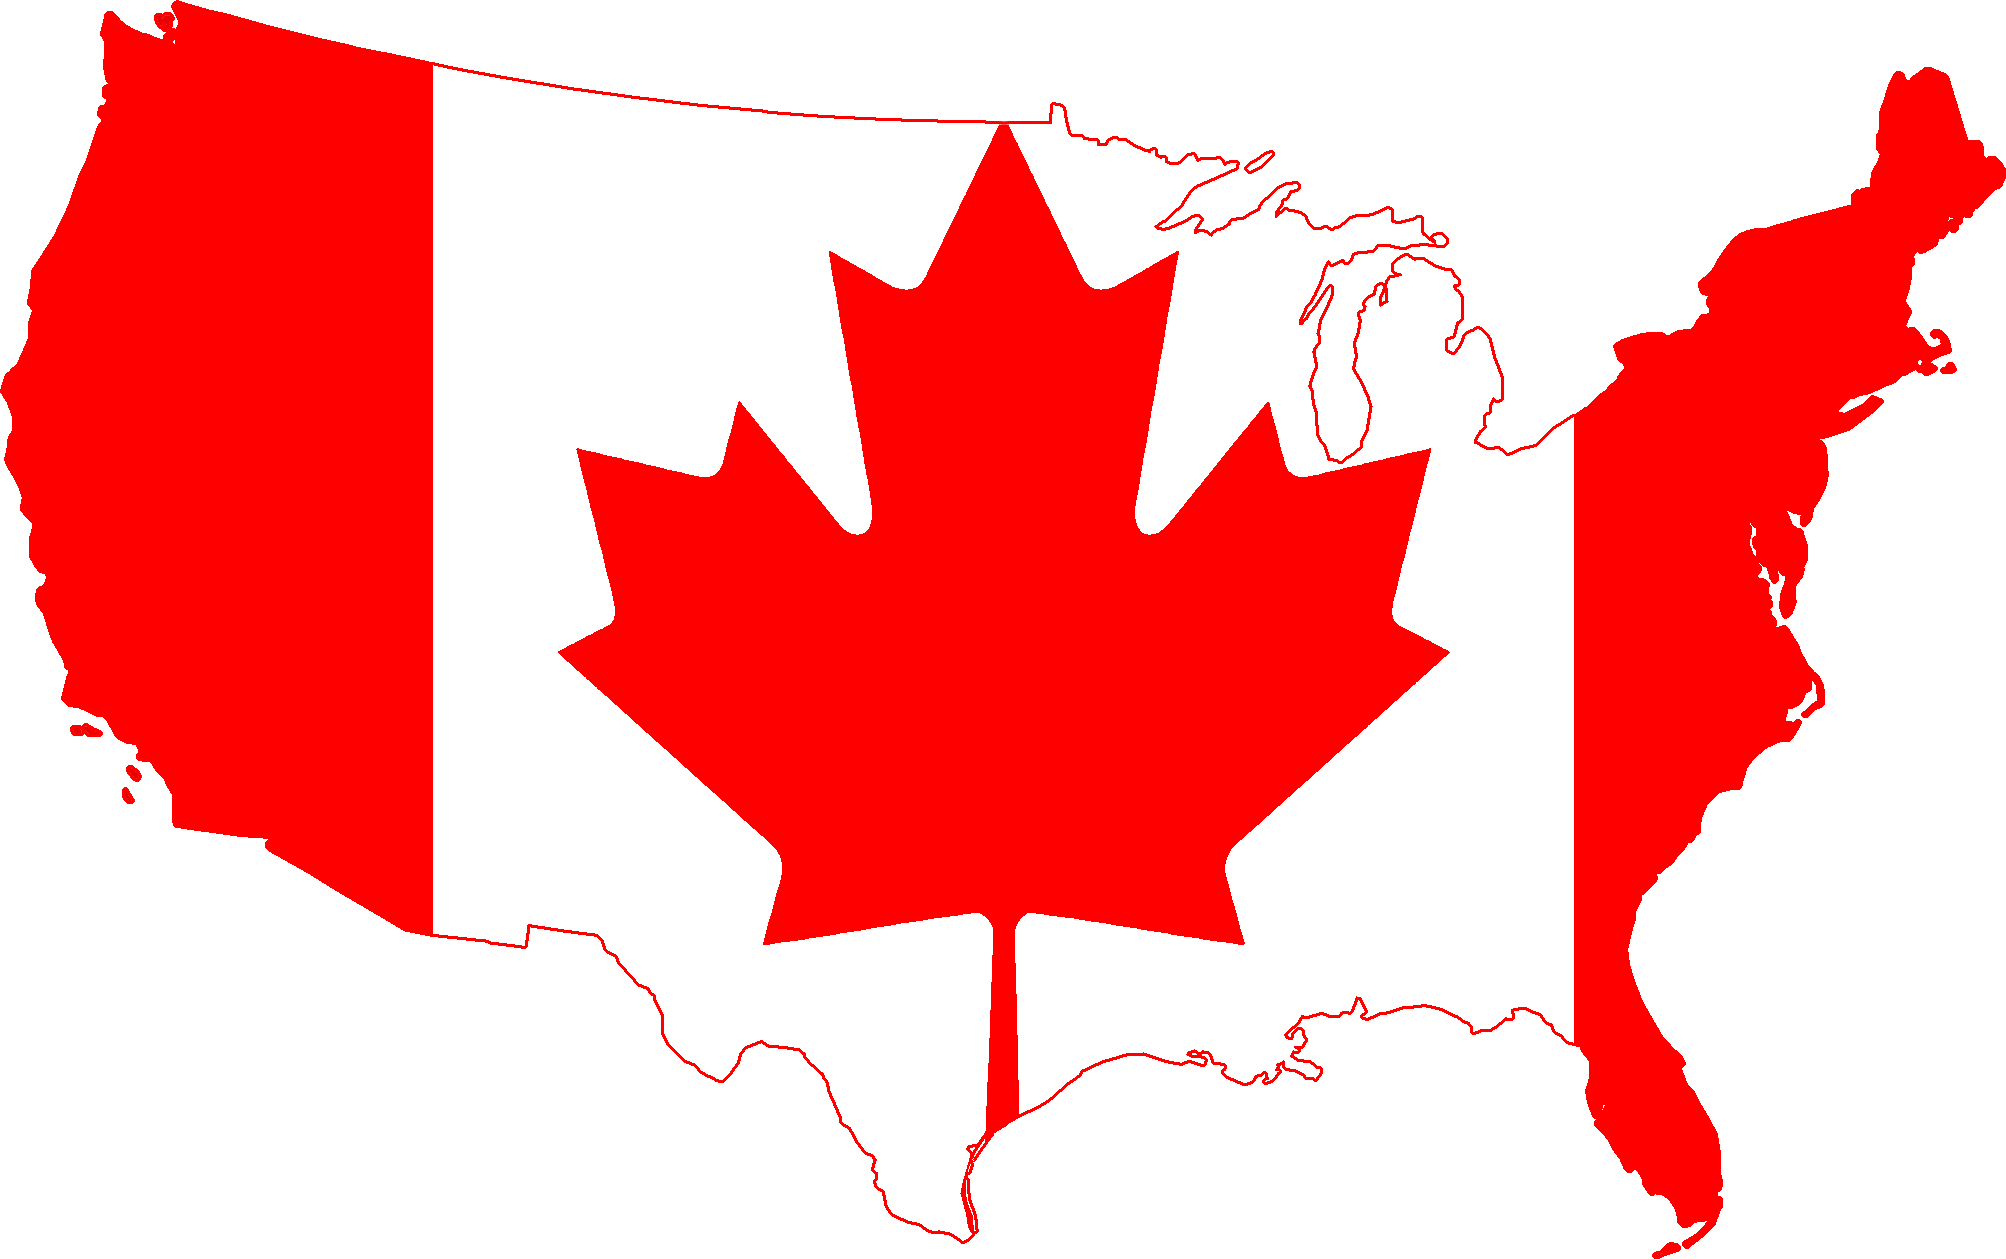 Canada And Usa Flag Map File:Flag Map of the United States (Canada).png   Wikimedia Commons